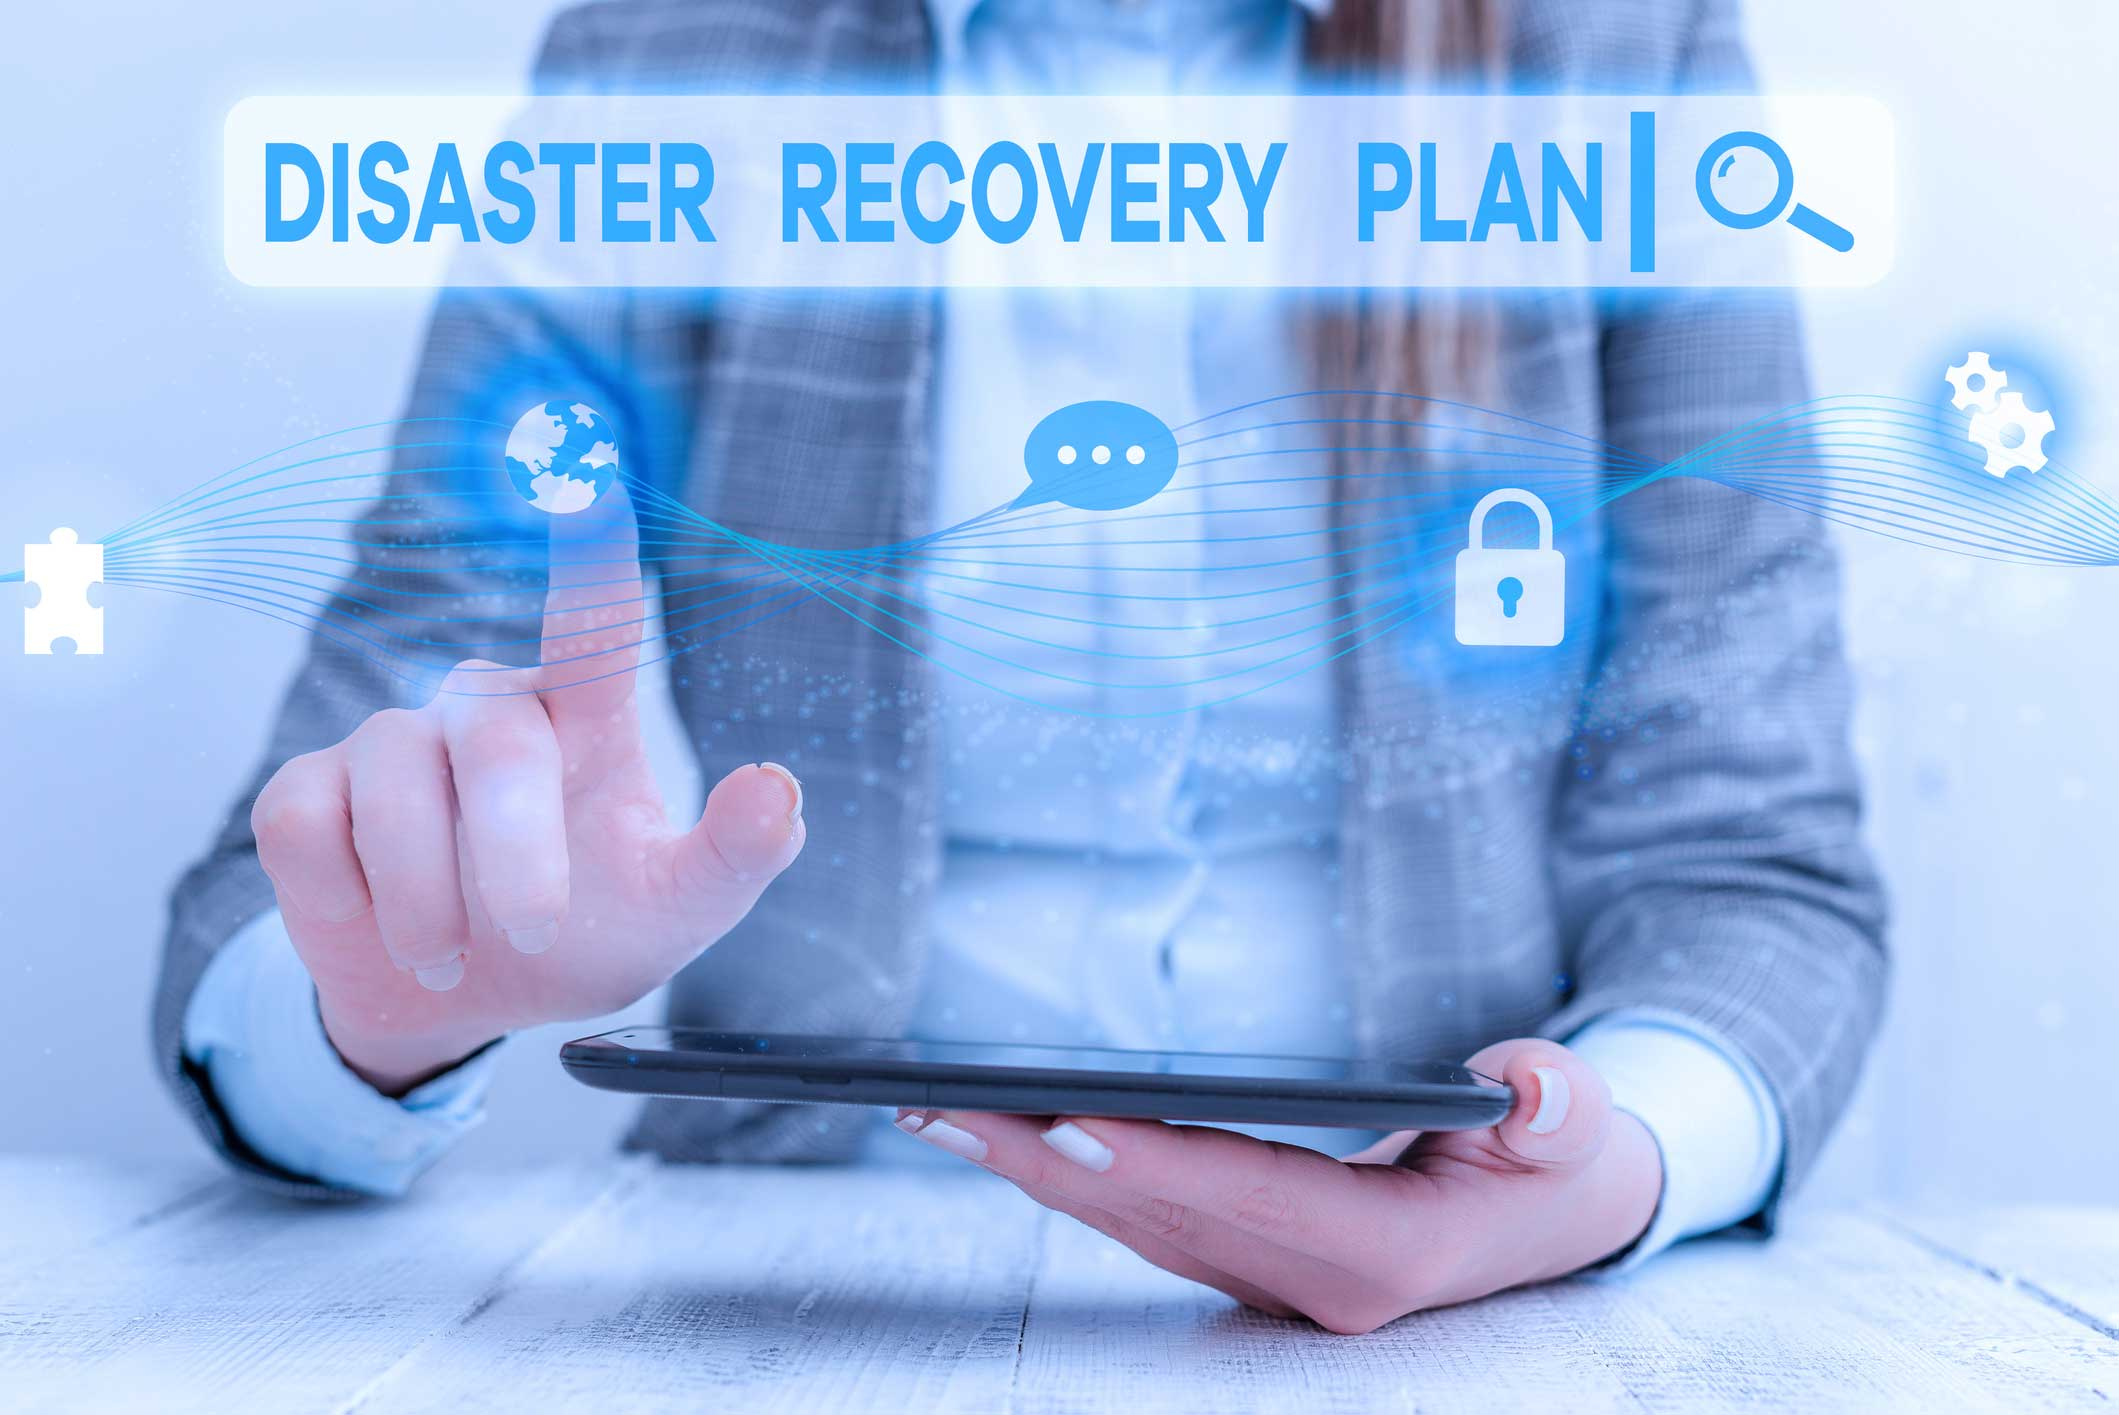 Technology Disaster Preparedness and Recovery Planning after Hurricane Harvey